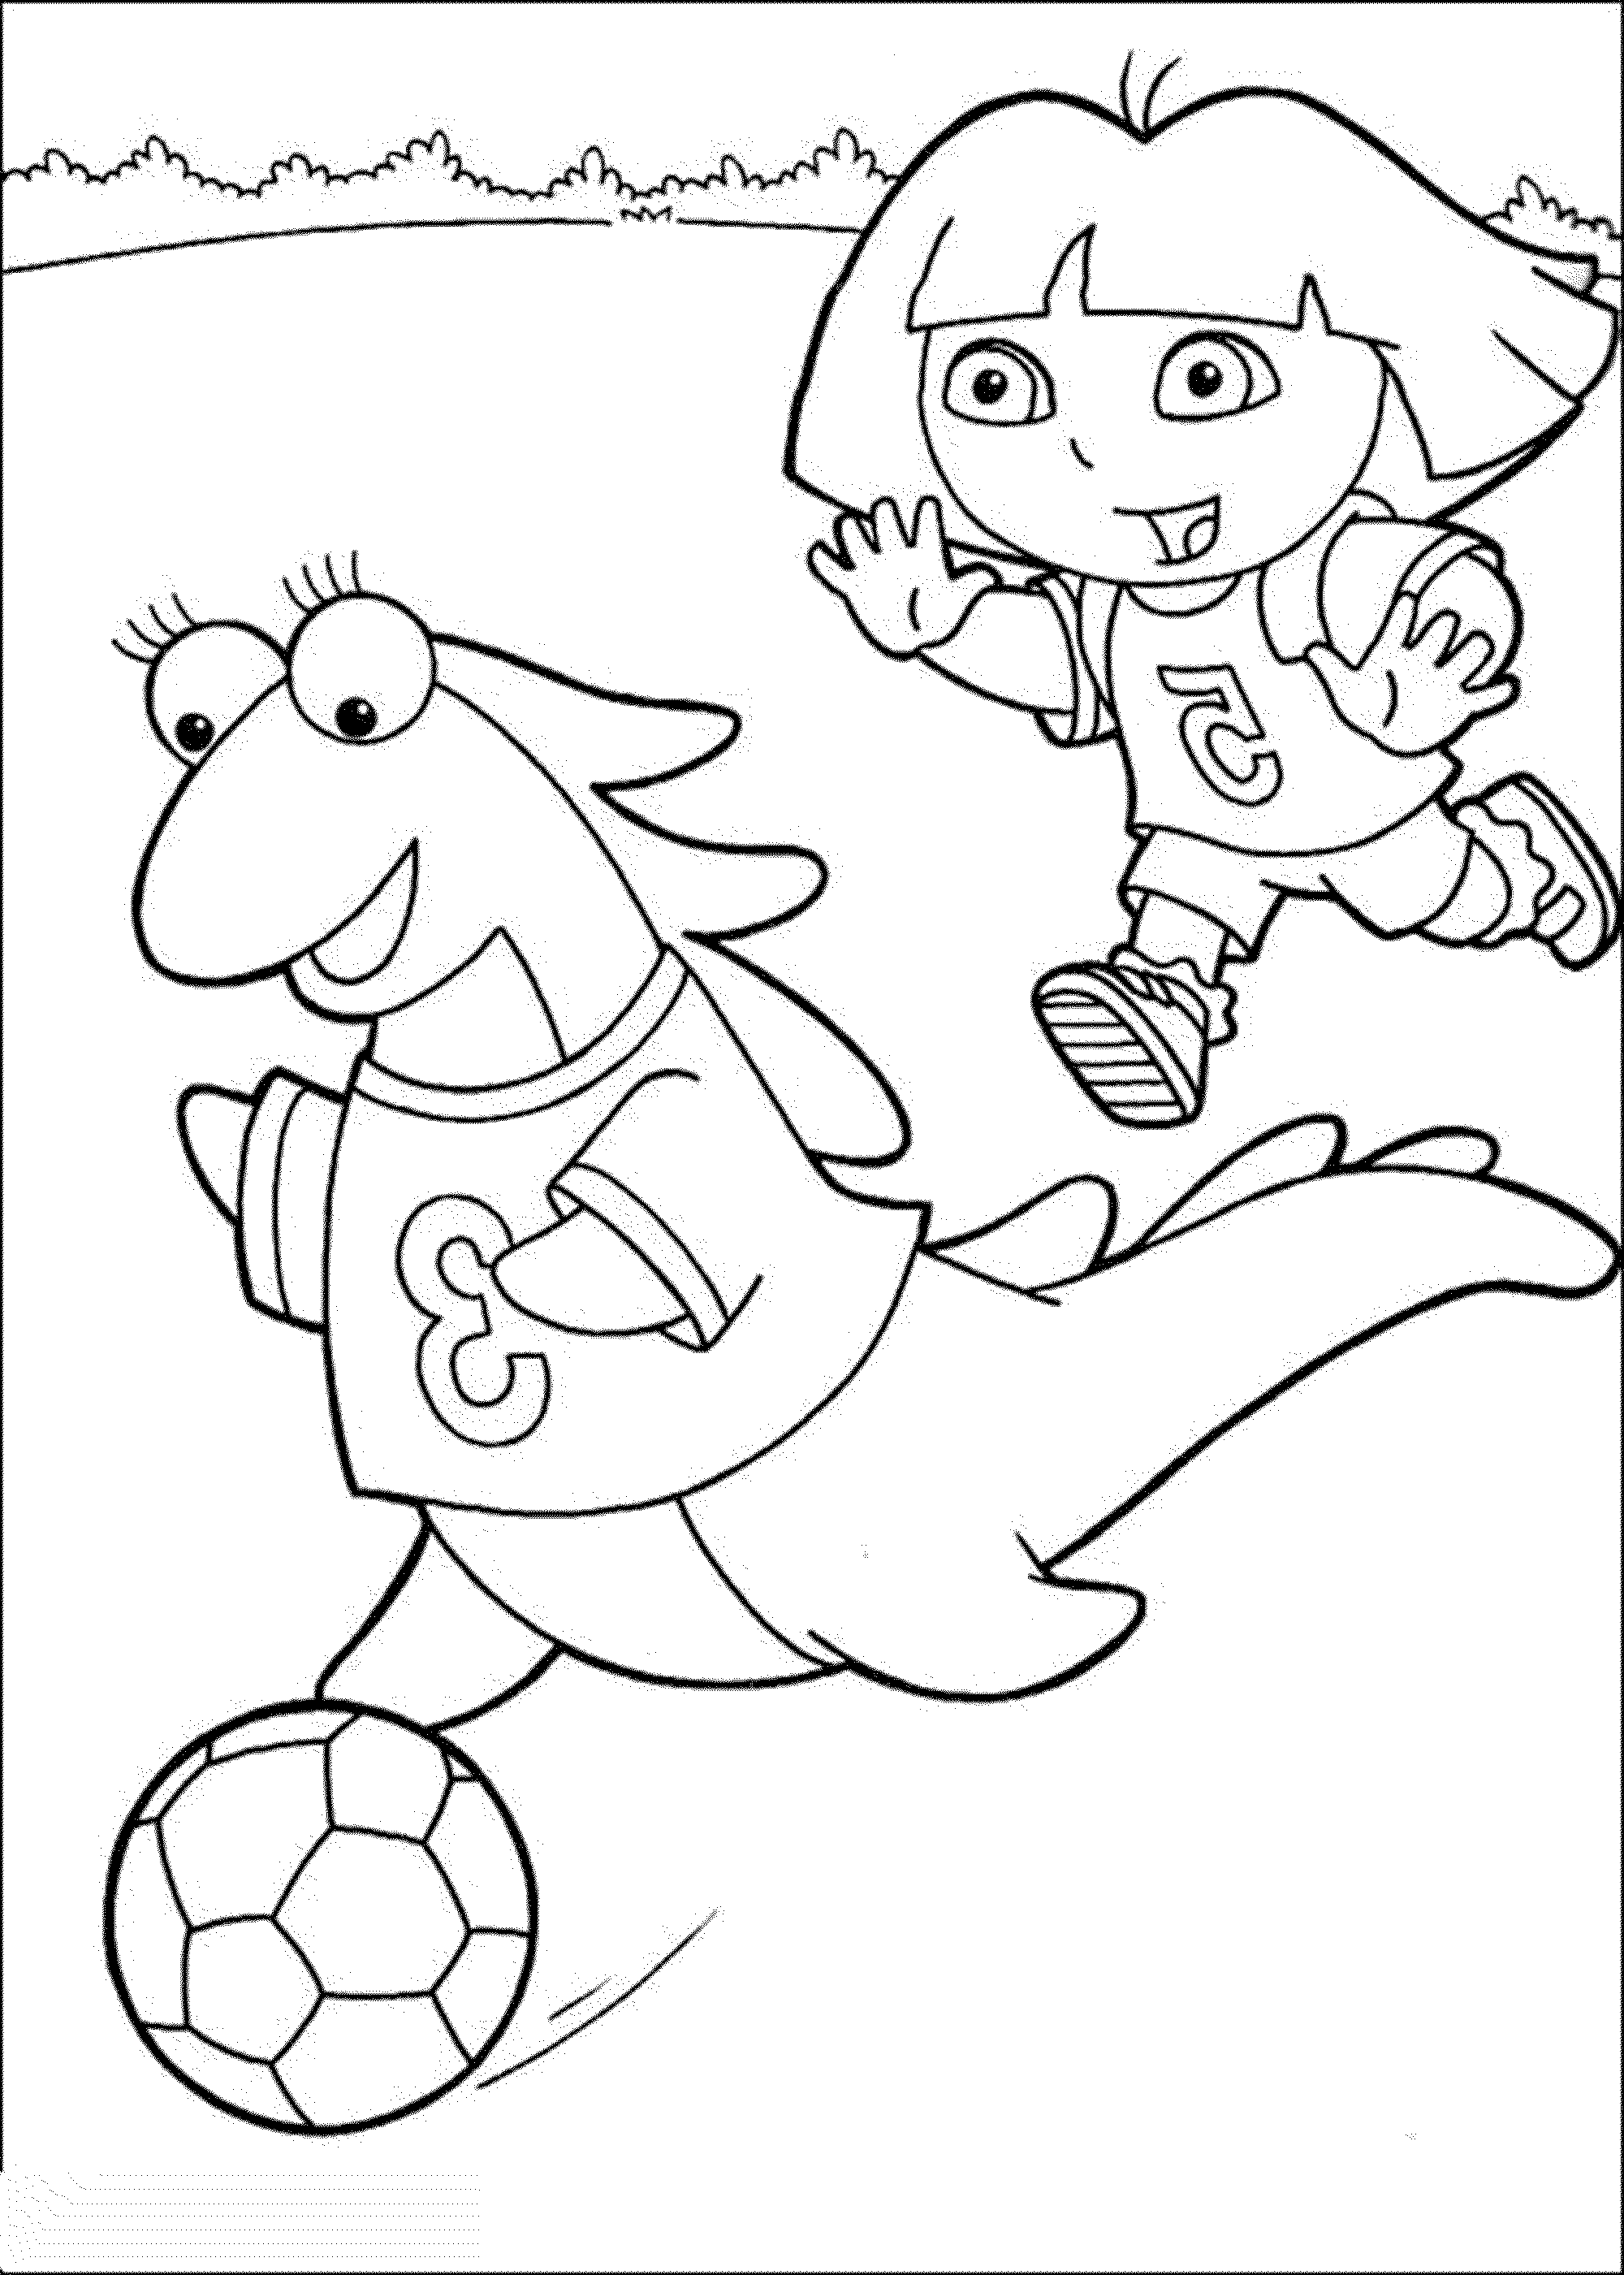 dora coloring print download dora coloring pages to learn new things dora coloring